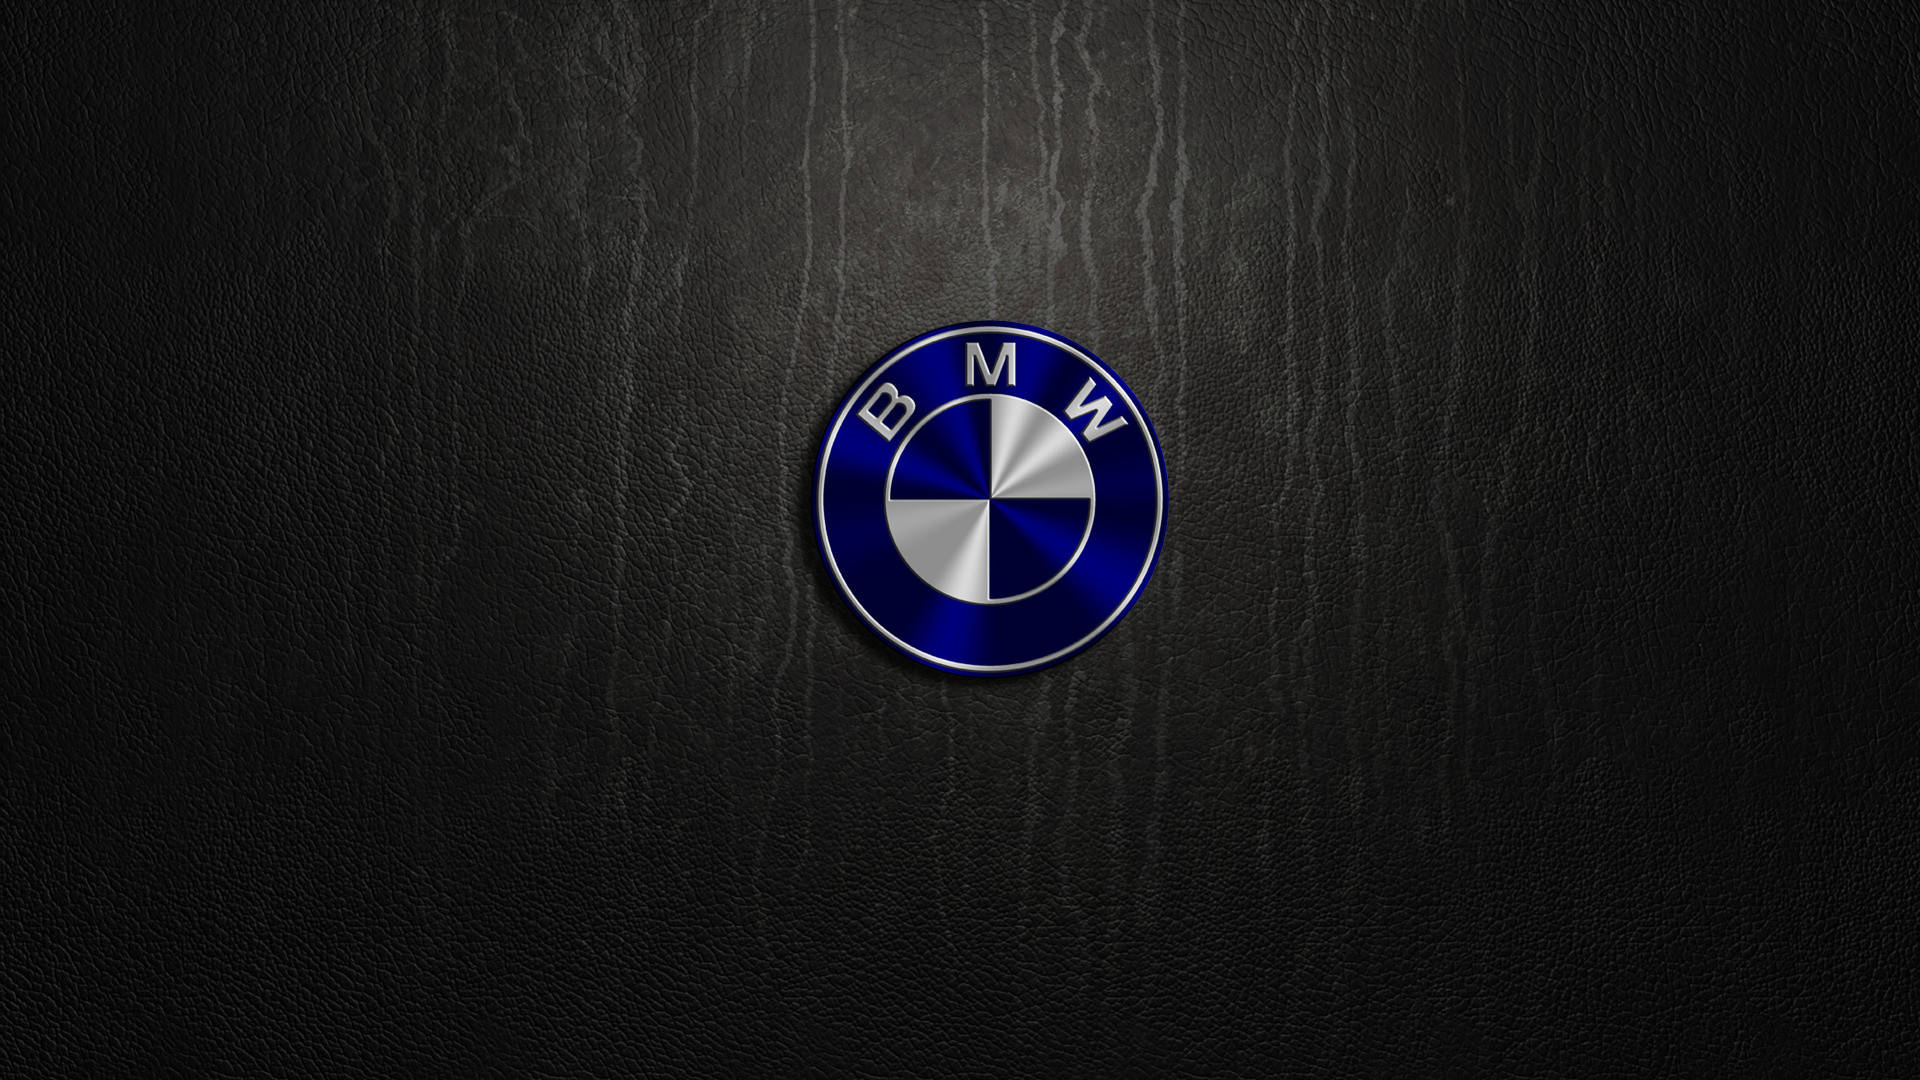 1920x1080 Bmw Logo Wallpapers, Pictures, Images with regard to Mercedes Logo  Wallpaper Desktop · Mercedes Benz ...